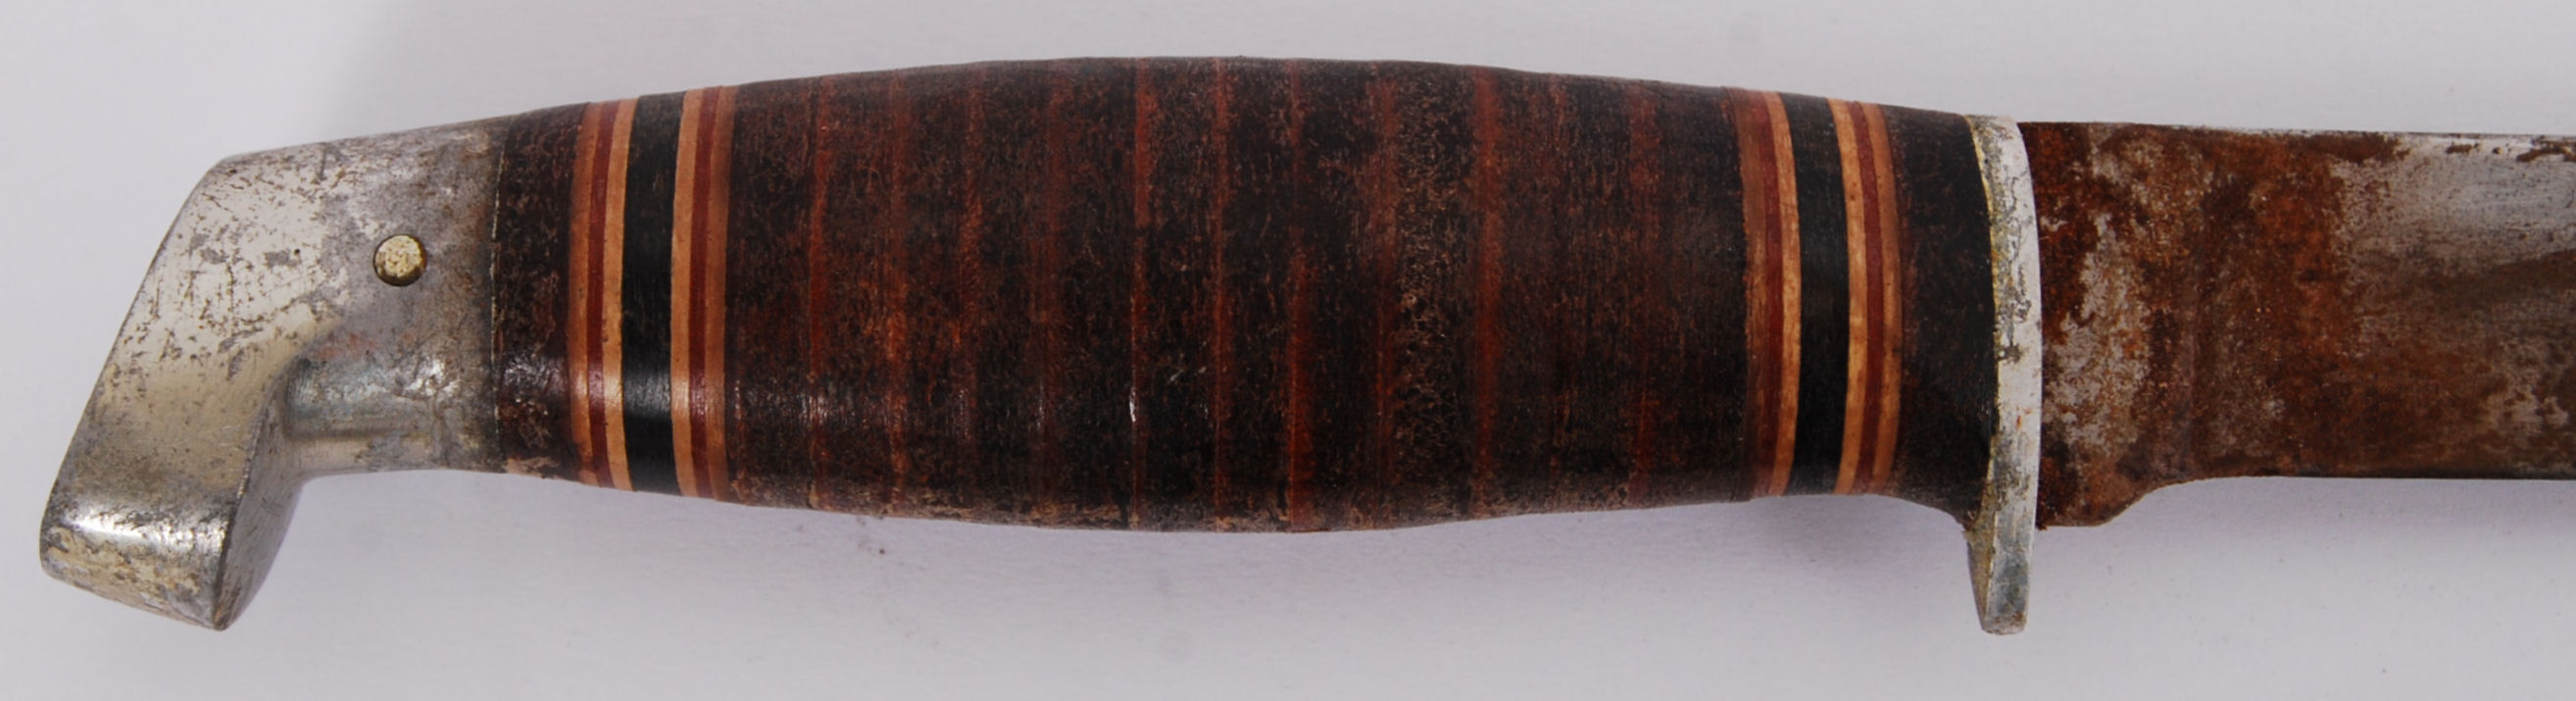 Lot 130 - FINNISH KNIFE